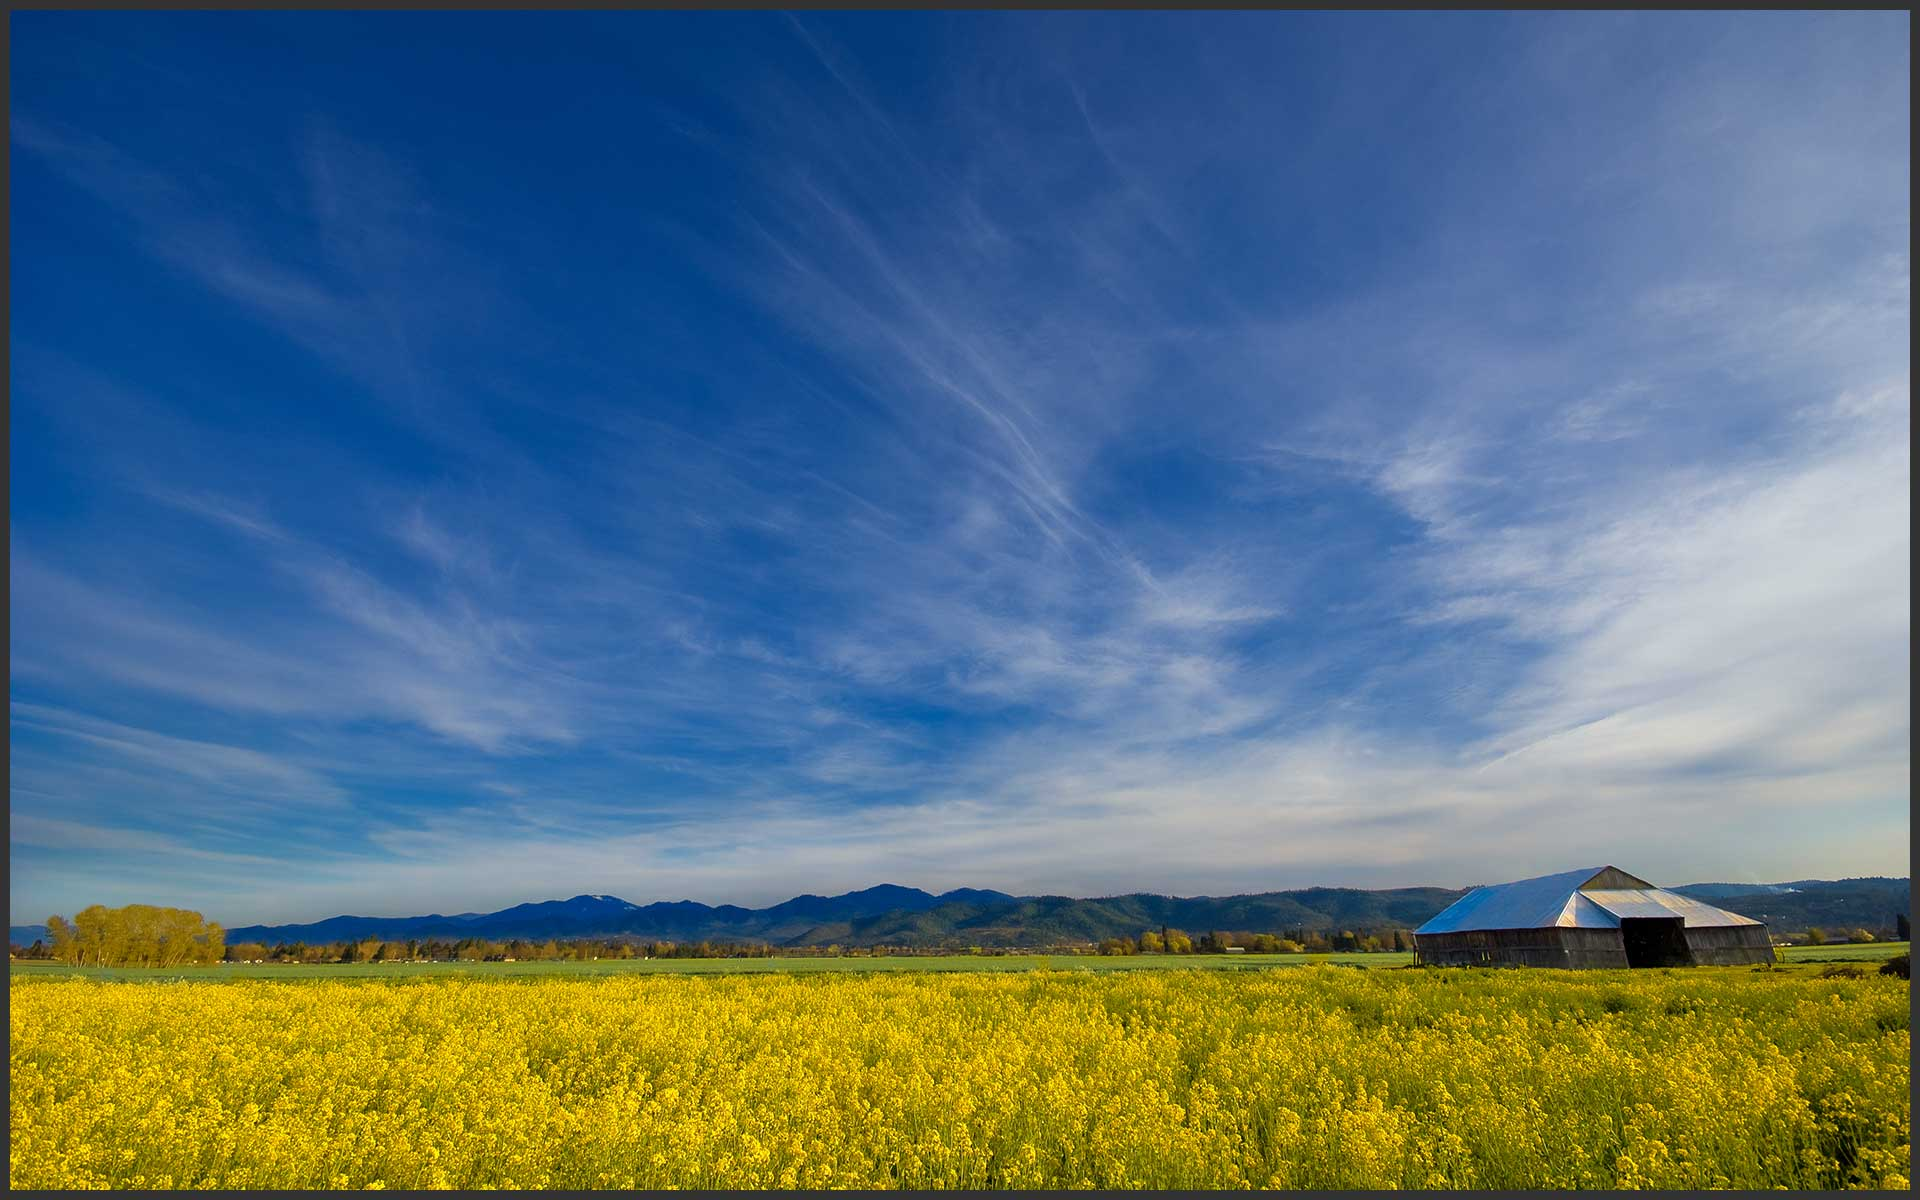 Mustard Field in the Rogue Valley